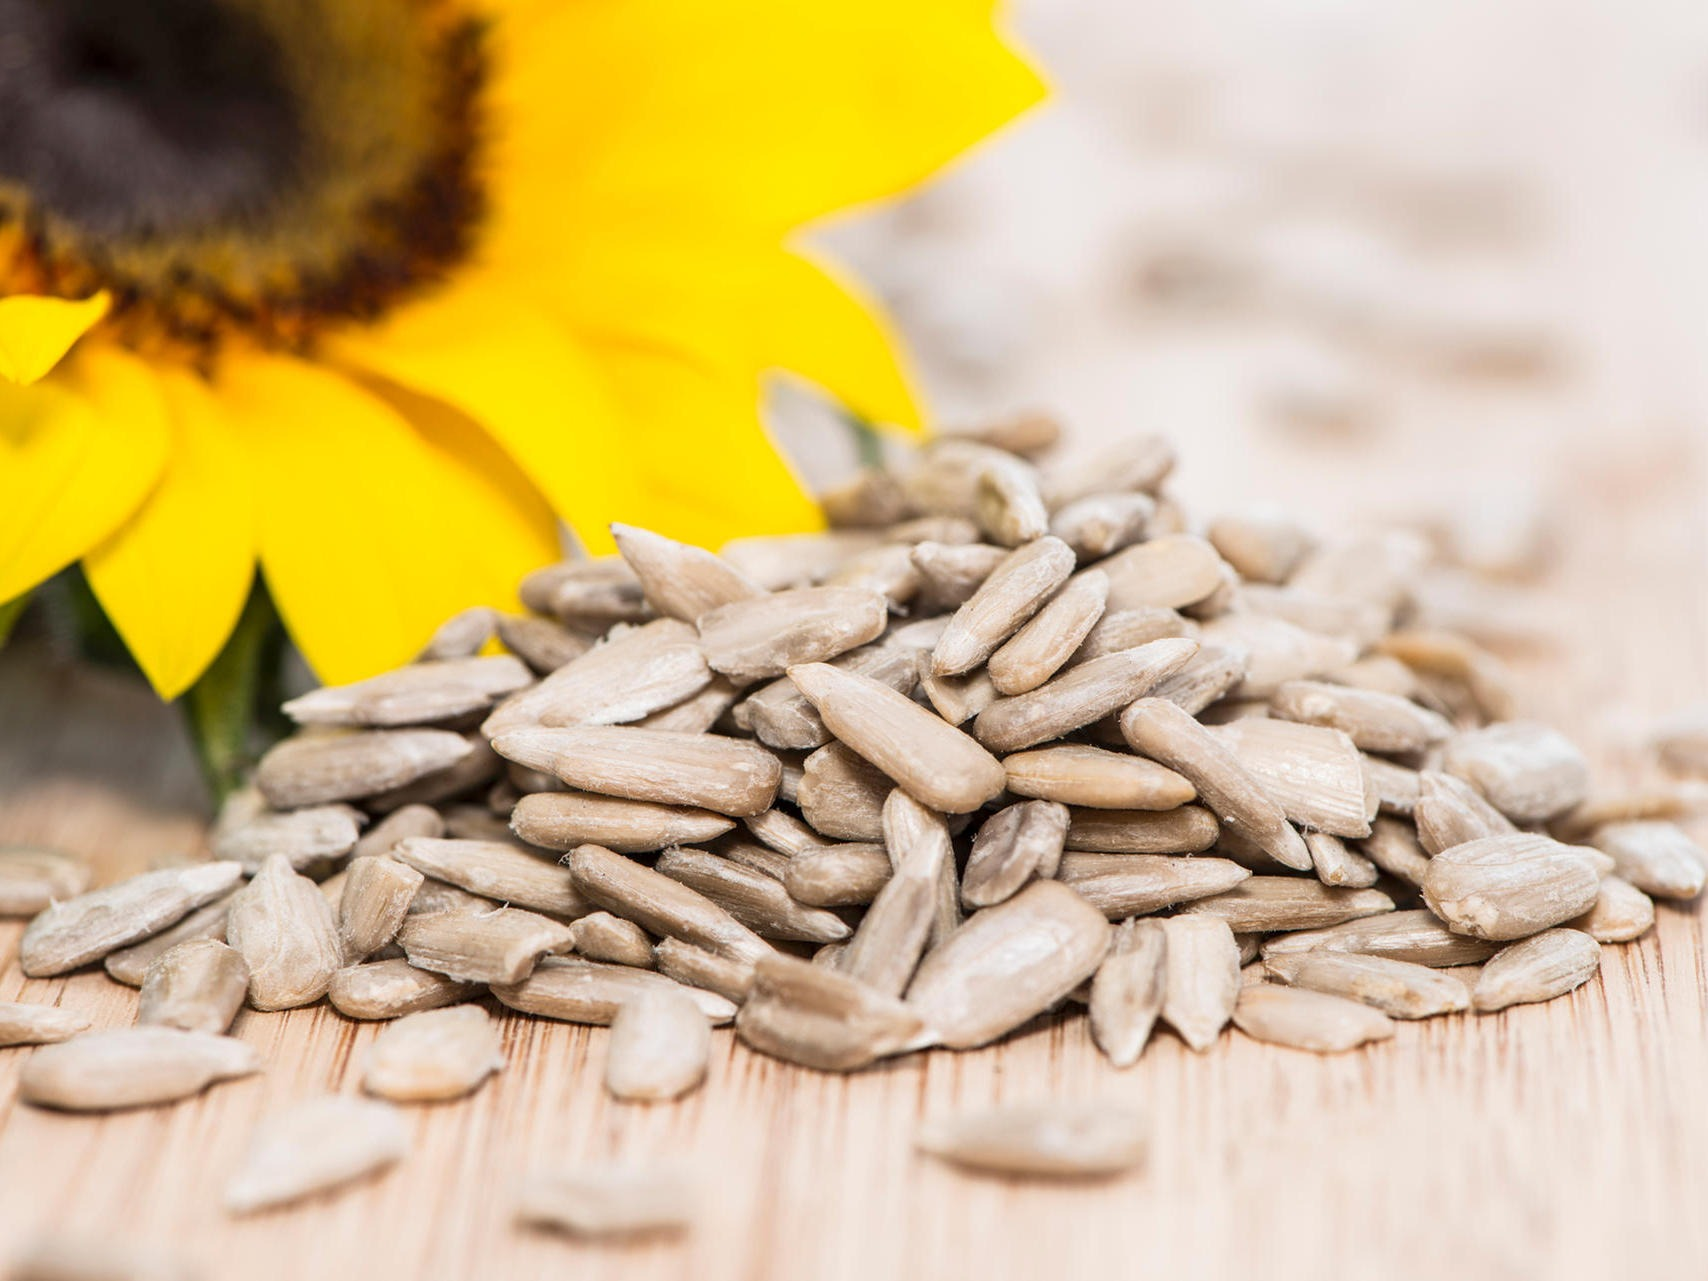 Sunflower with Seeds on wooden background (macro shot)